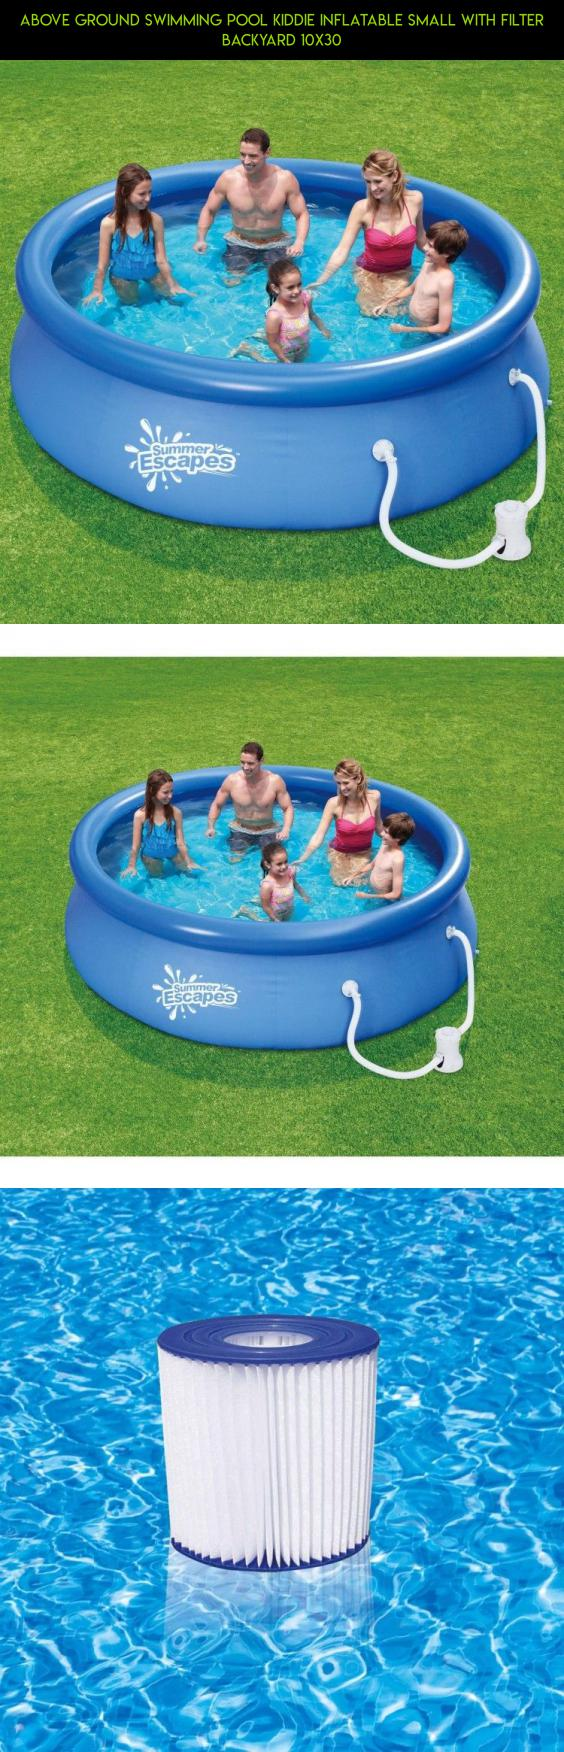 above ground swimming pool kiddie inflatable small with filter